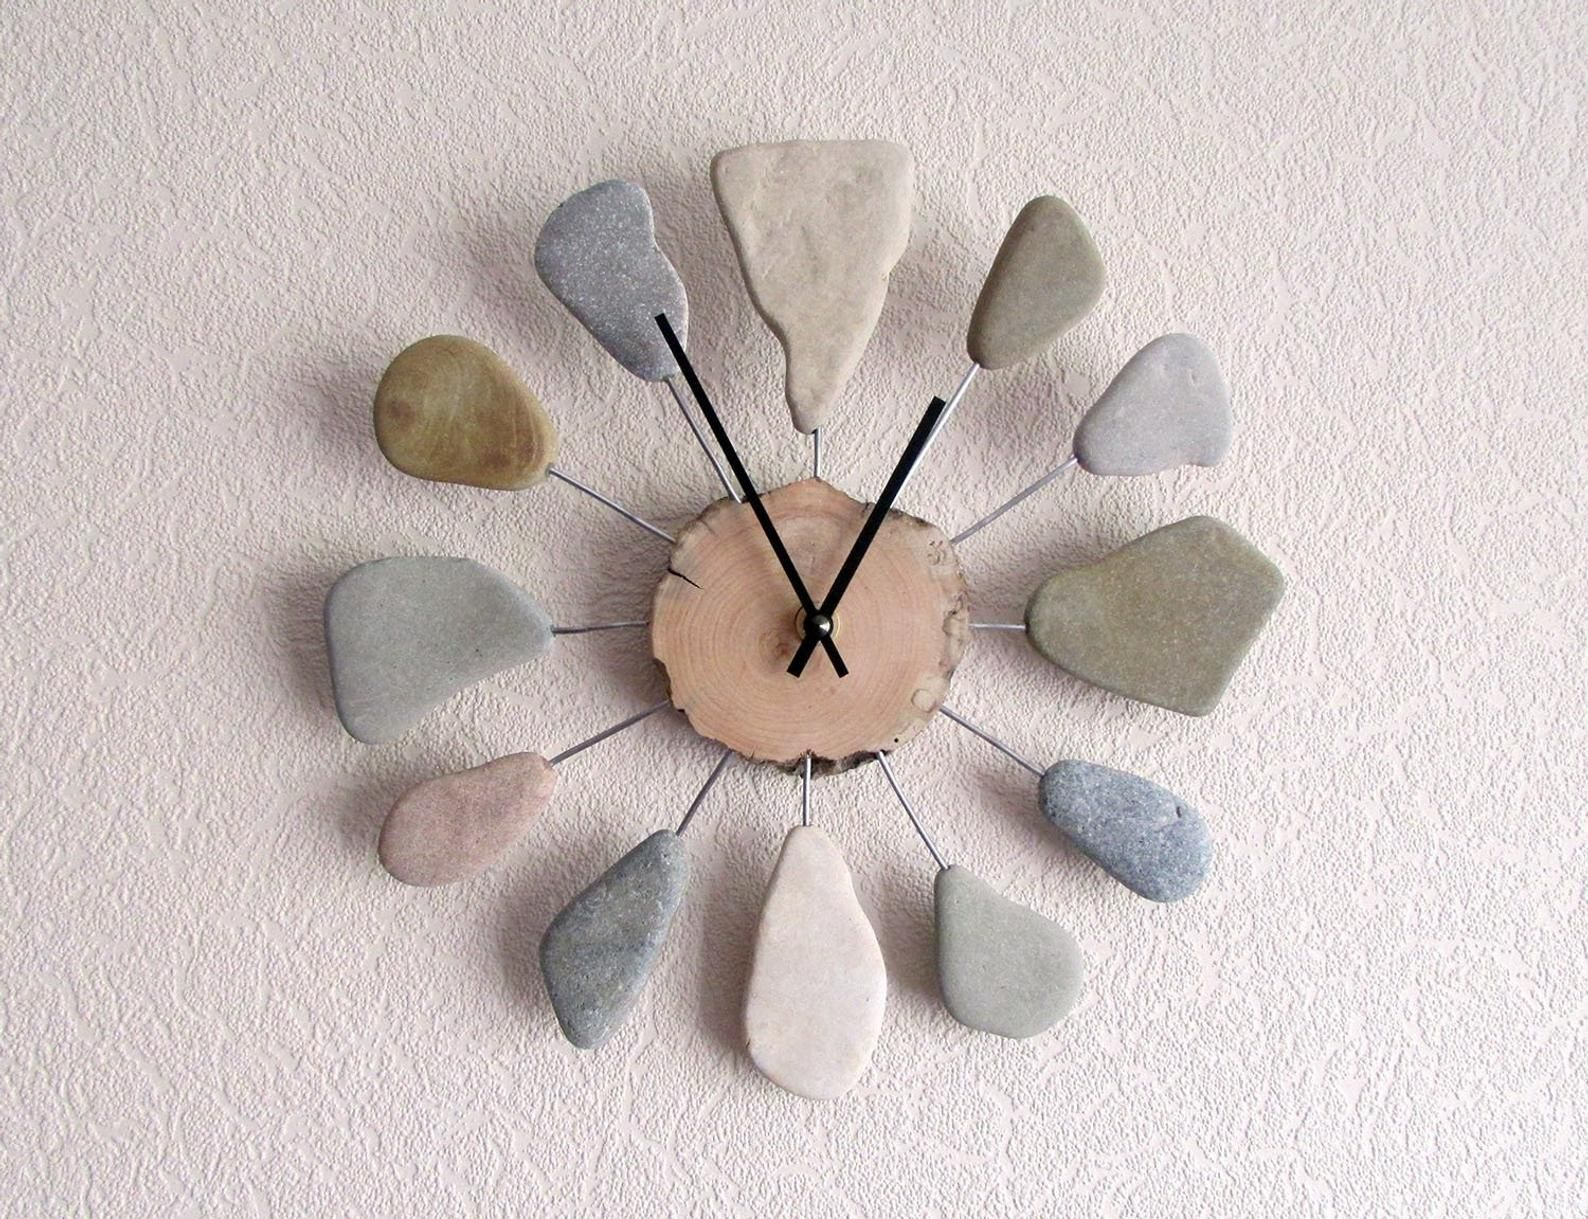 Coastal Design Clock 10 Rustic Natural Wood Stone Etsy Driftwood Diy Beach Theme Gifts Driftwood Art